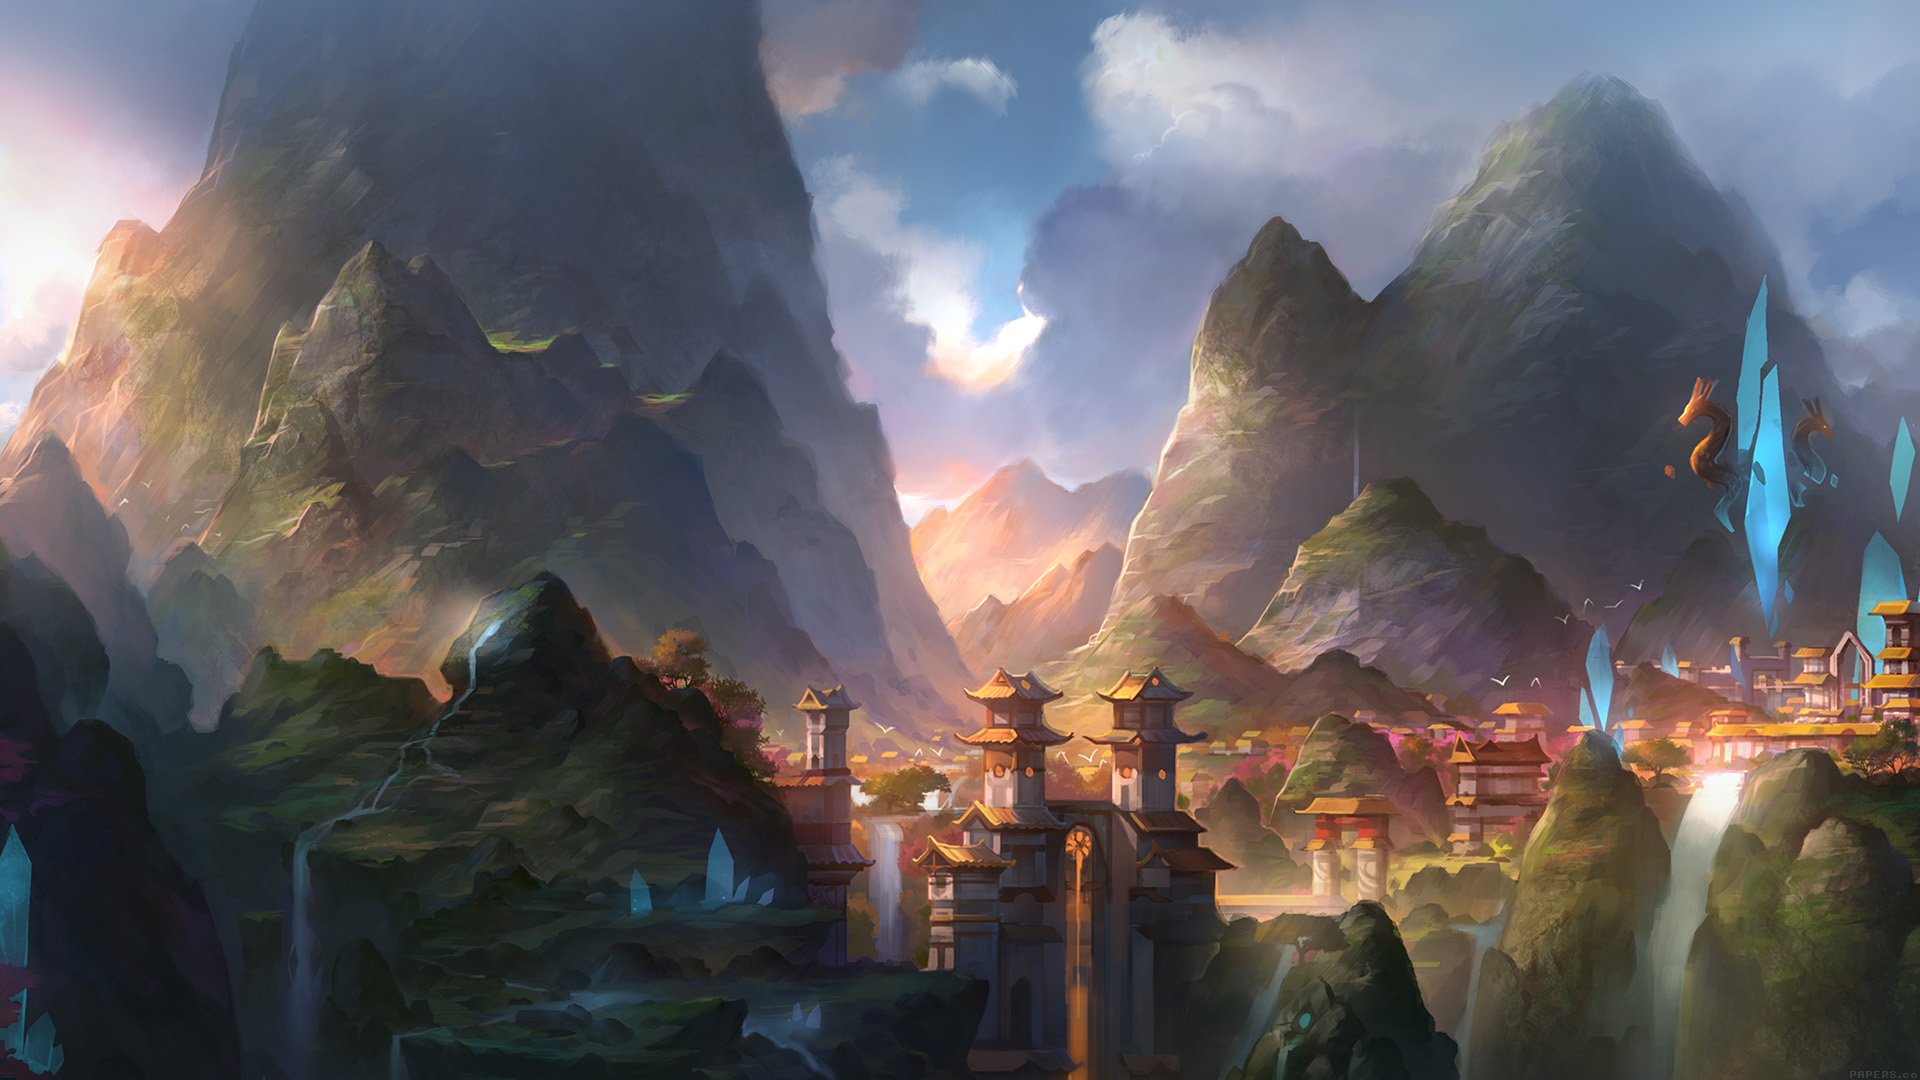 City Fall Desktop Wallpapers Af67 Mountain Art Illust Anime Peaceful Papers Co